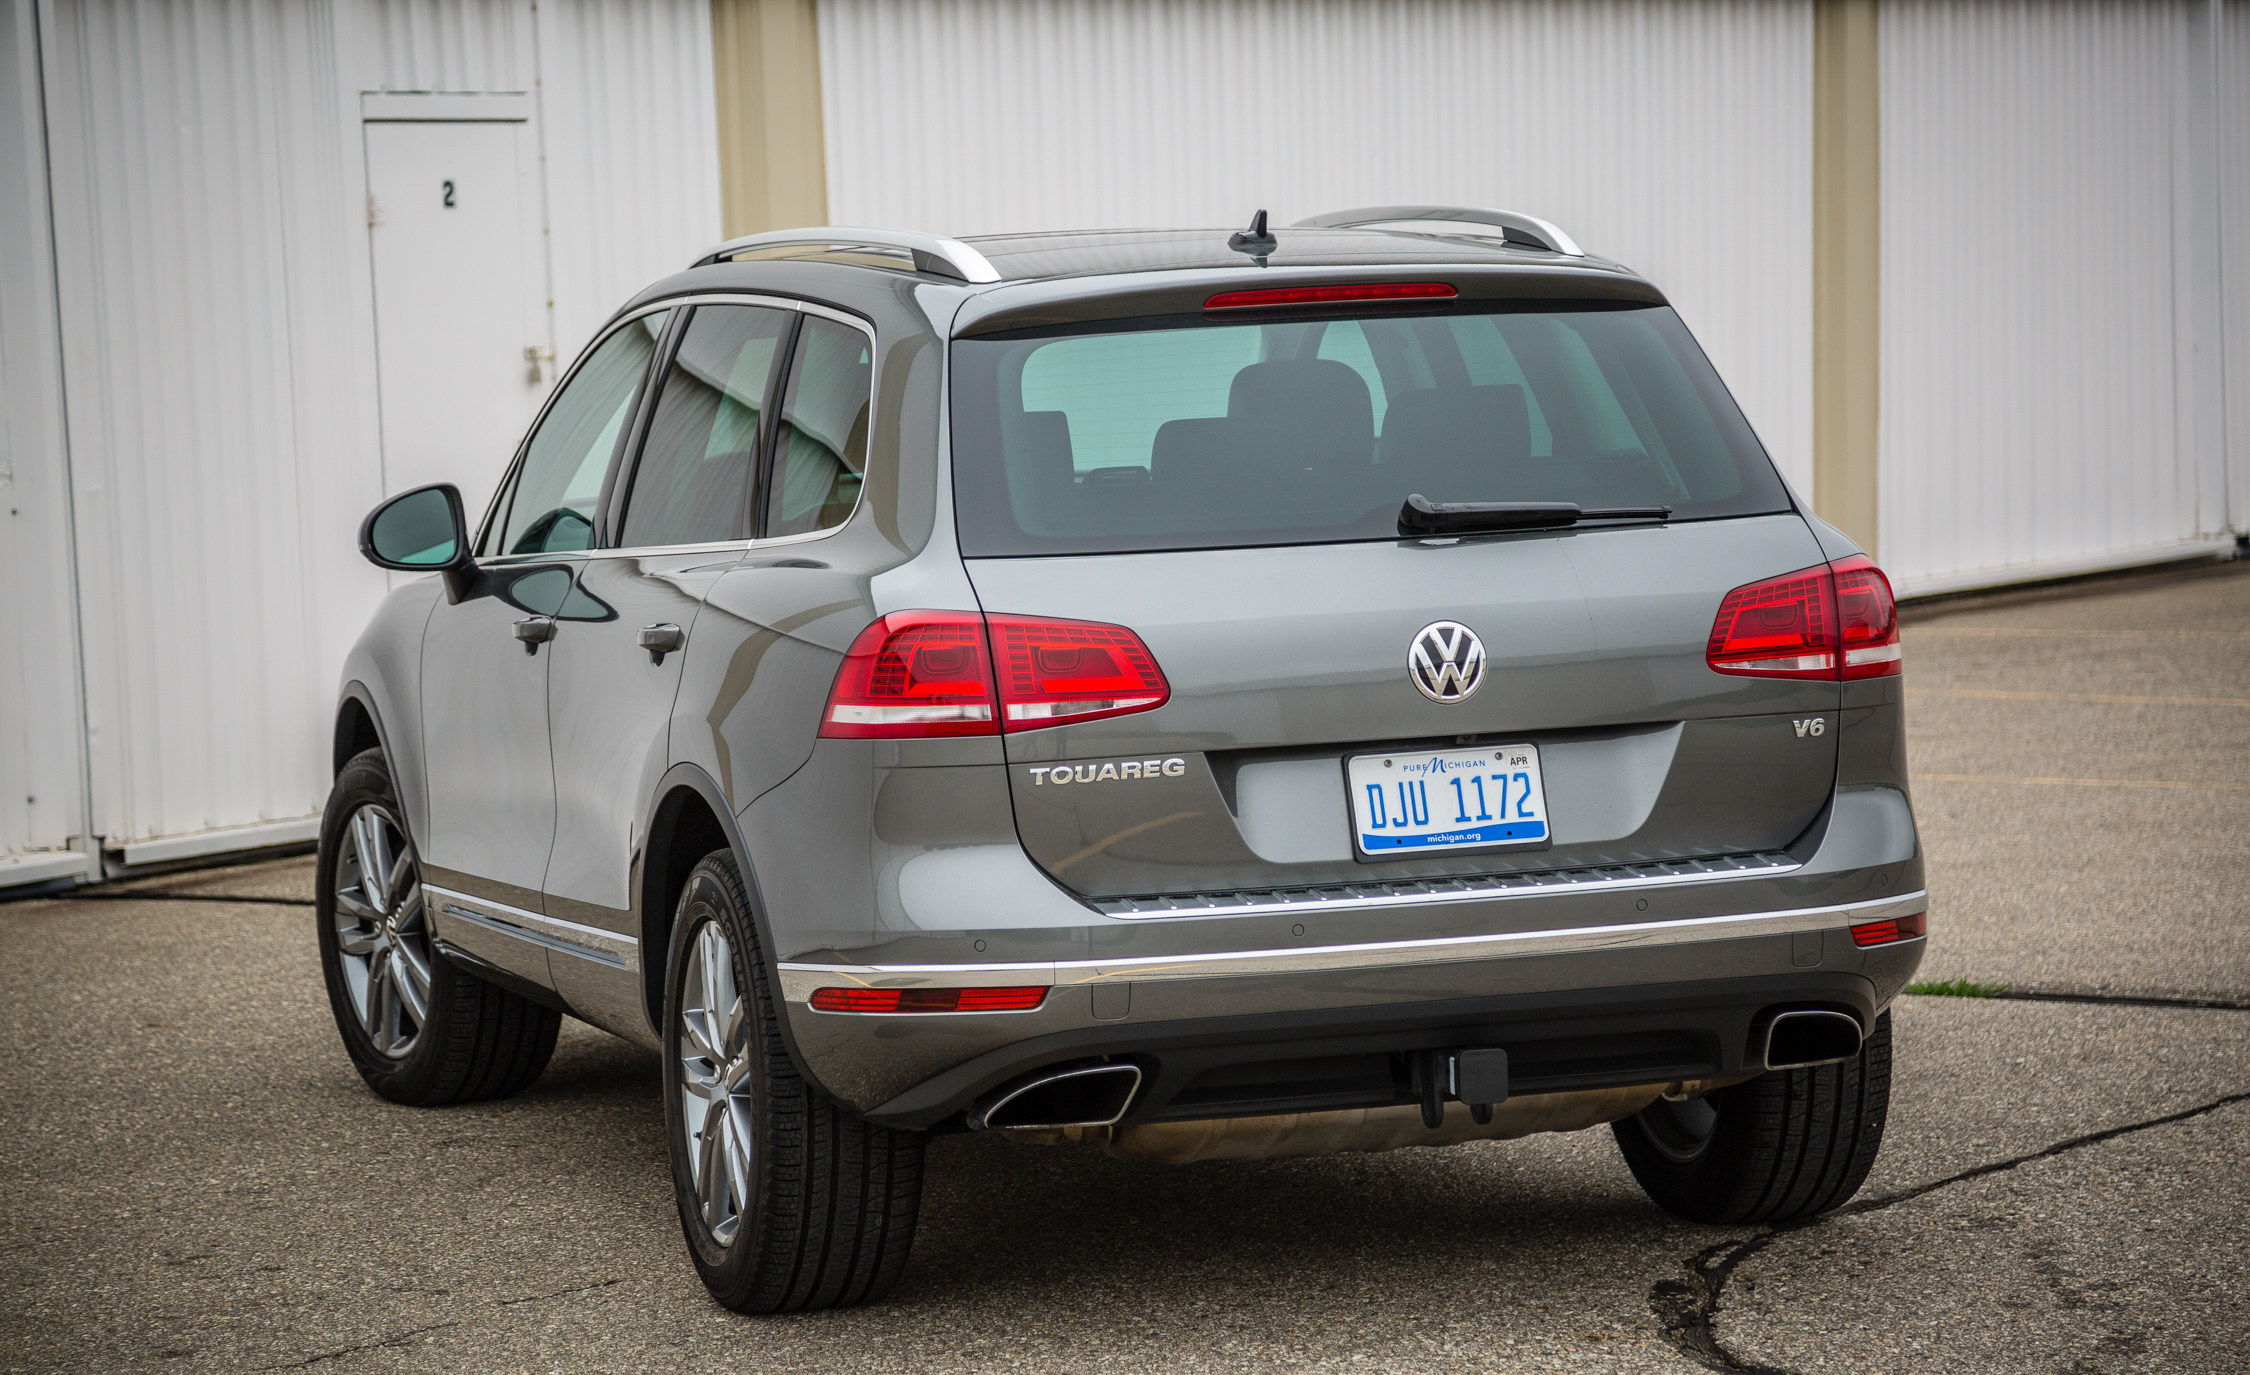 2016 Volkswagen Touareg Exterior Rear (View 15 of 16)